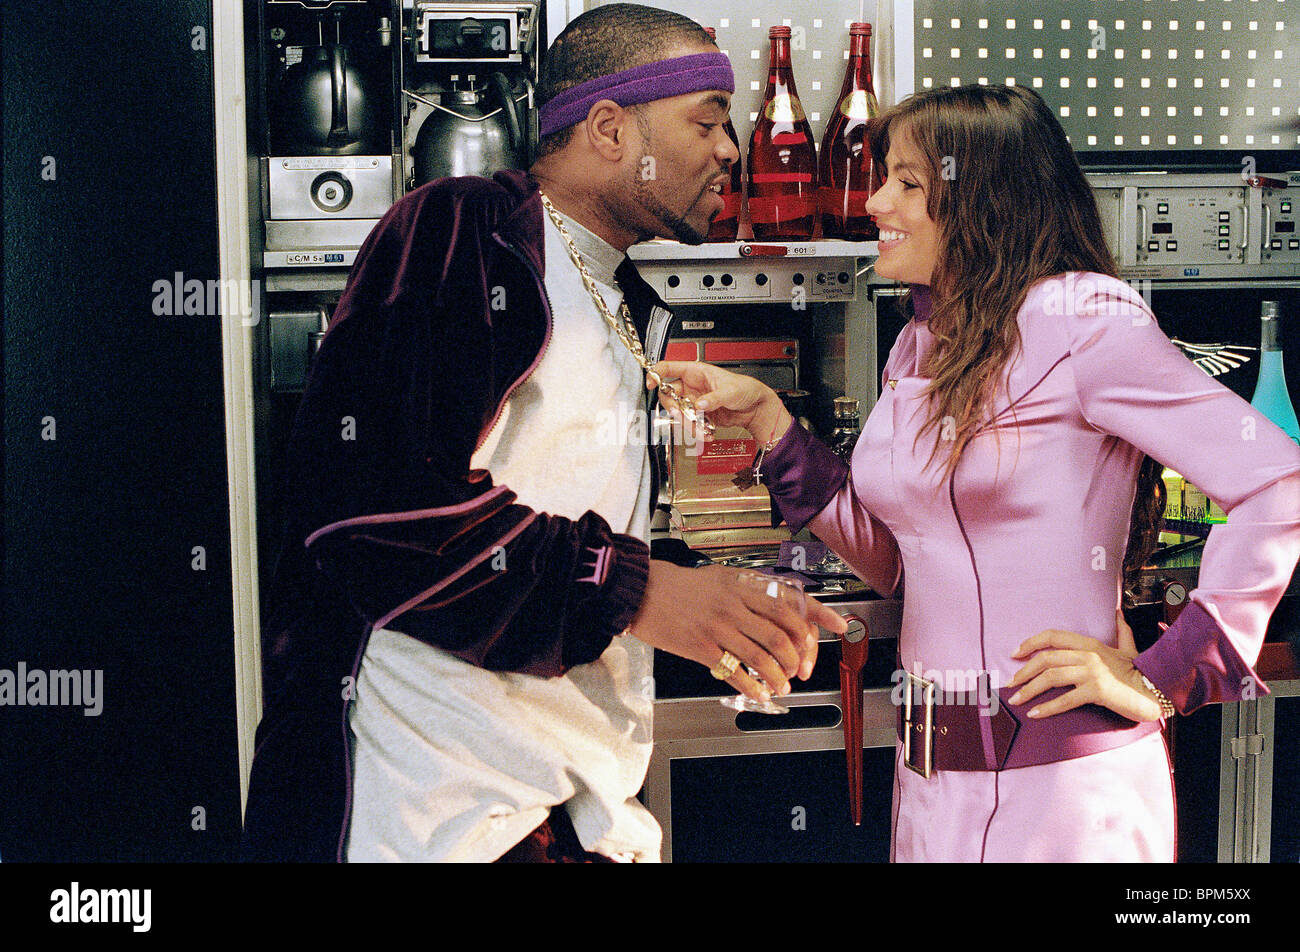 Sofia Vergara Soul Plane Method Man And Sofia Vergara Soul Plane 2004 Stock Photo